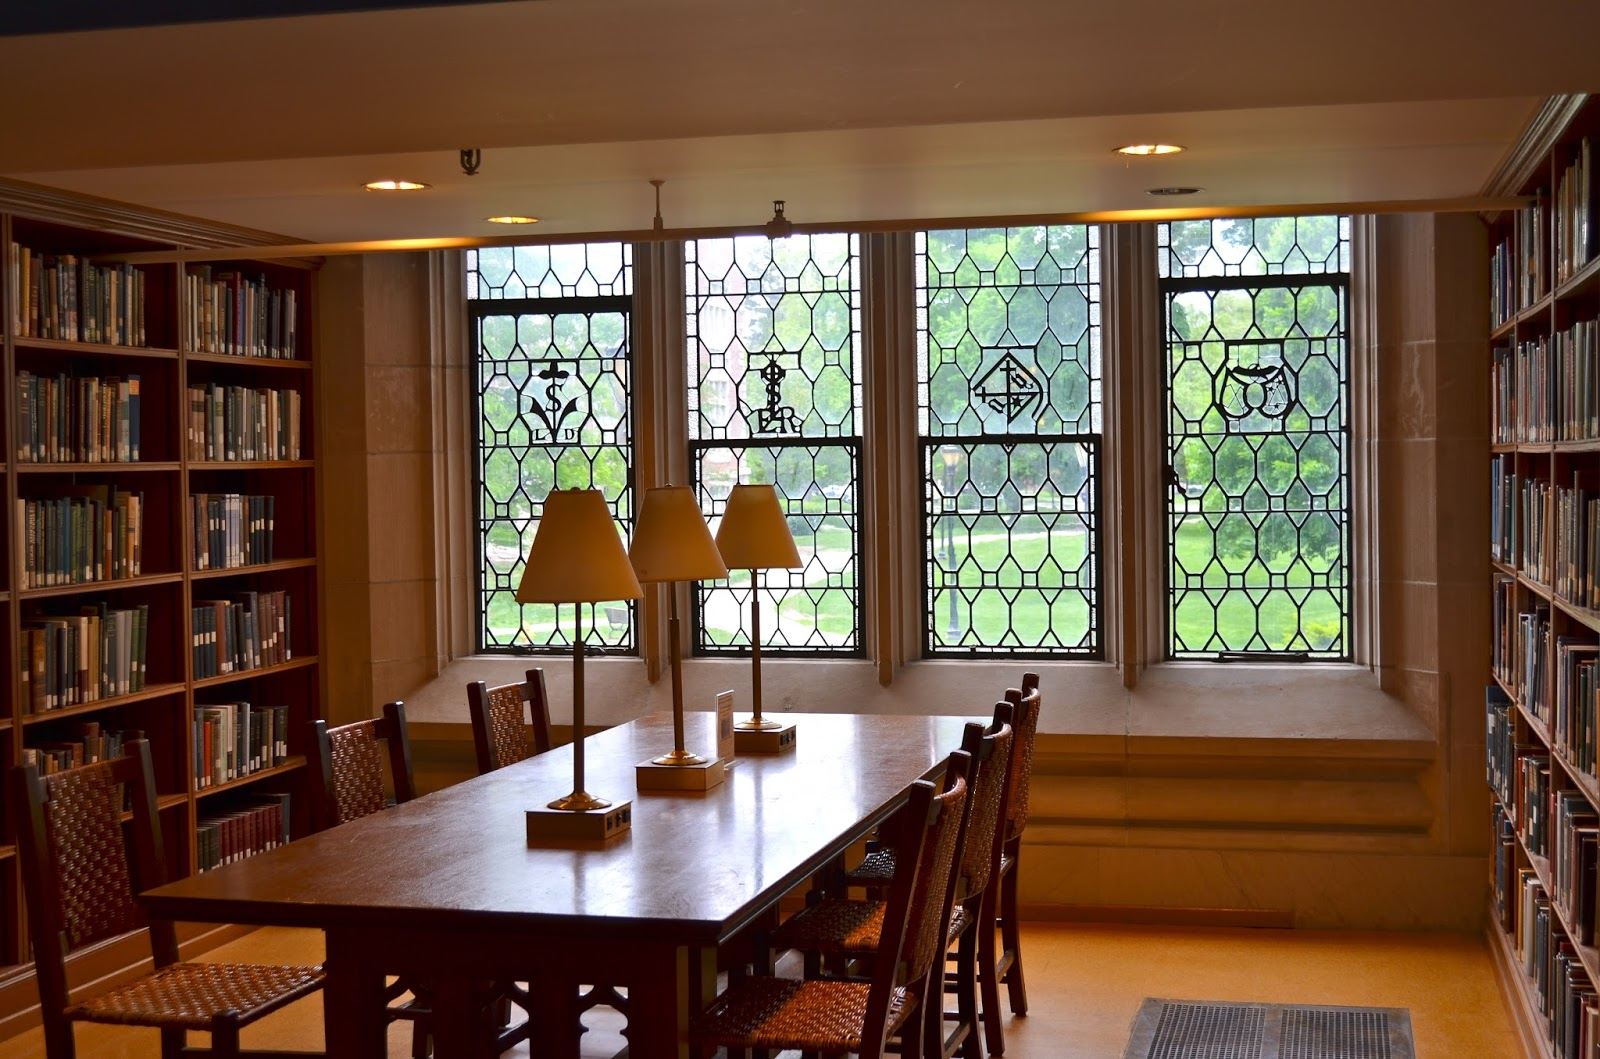 Vassar College Library